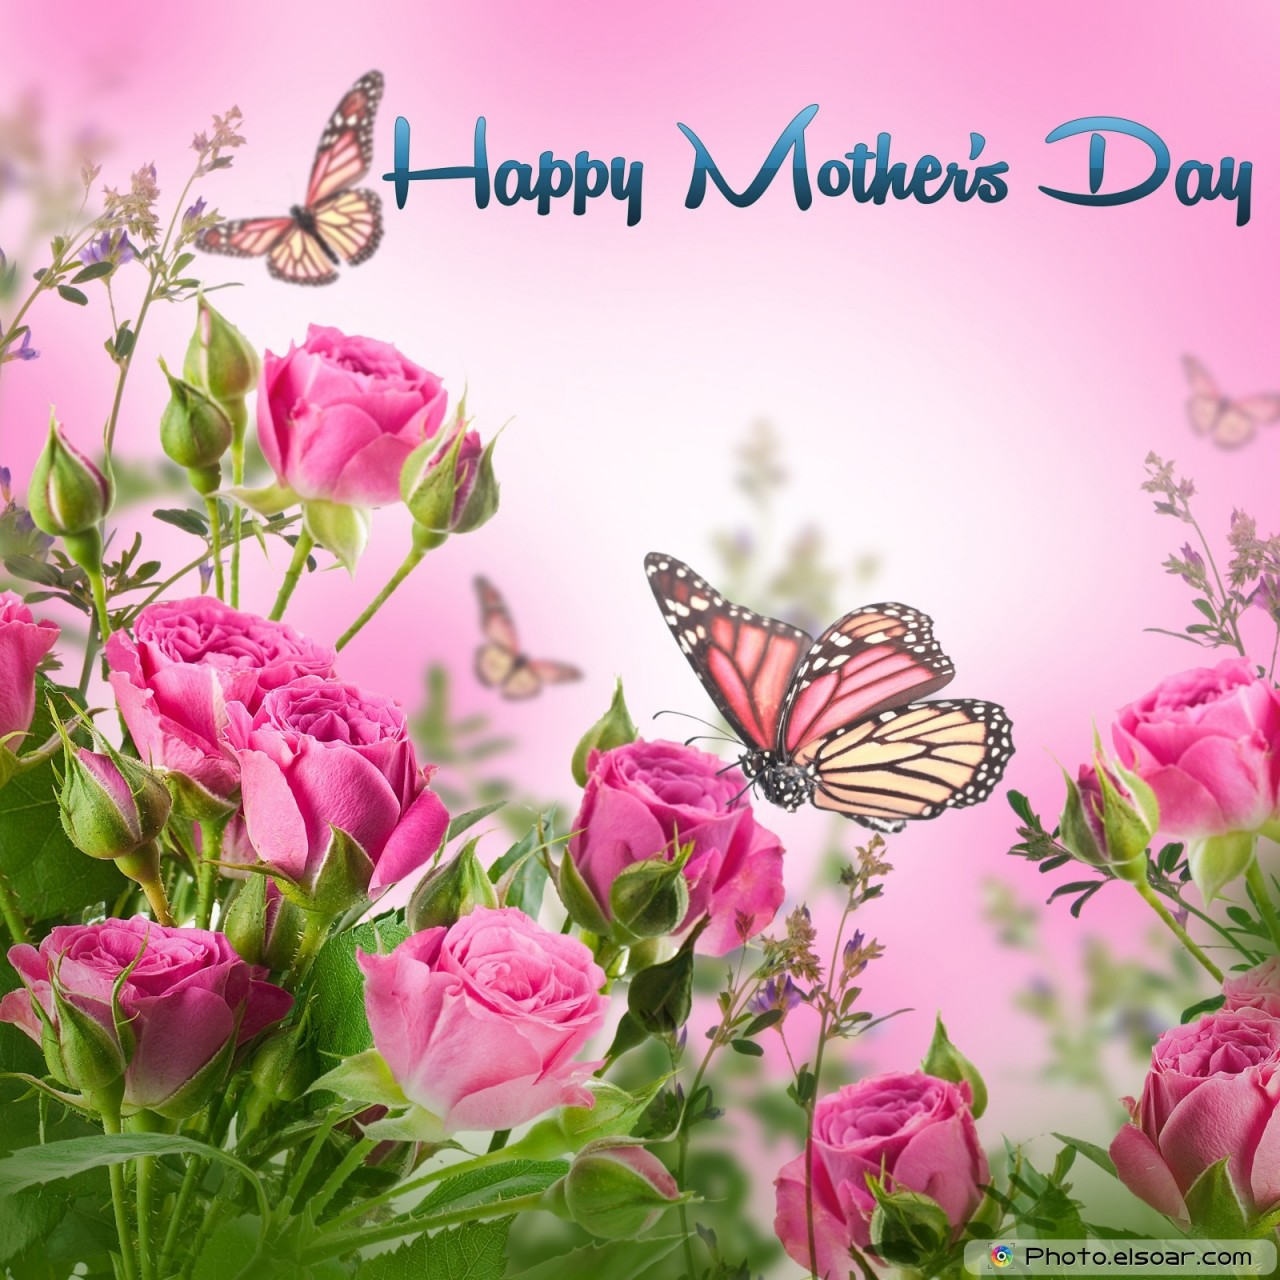 Happy Mothers Day Cards Flowers Happy Motherus Day Flowers Cards